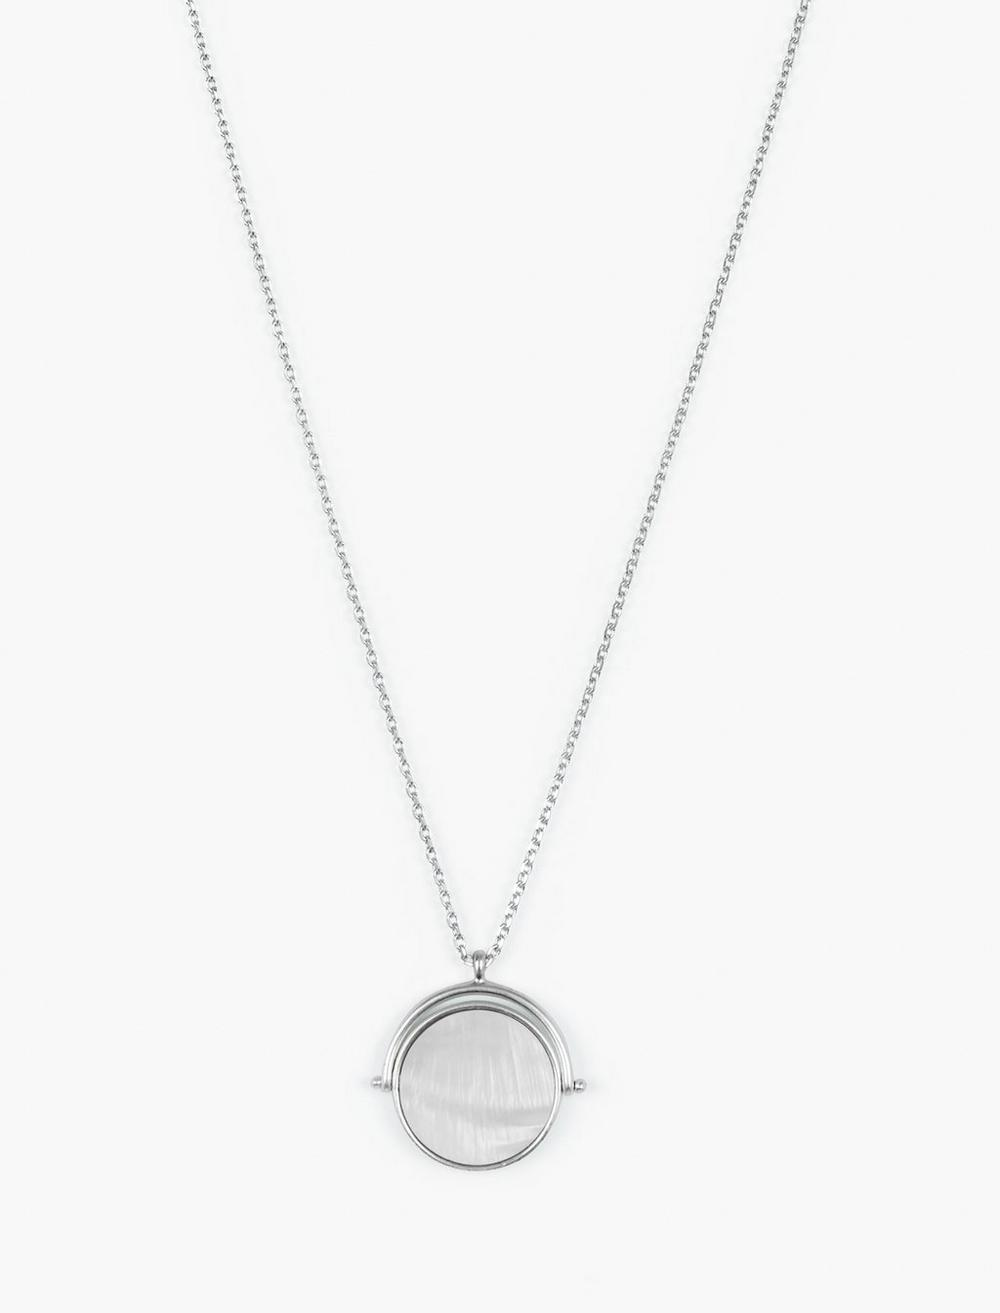 SPINNER PENDANT NECKLACE, image 2